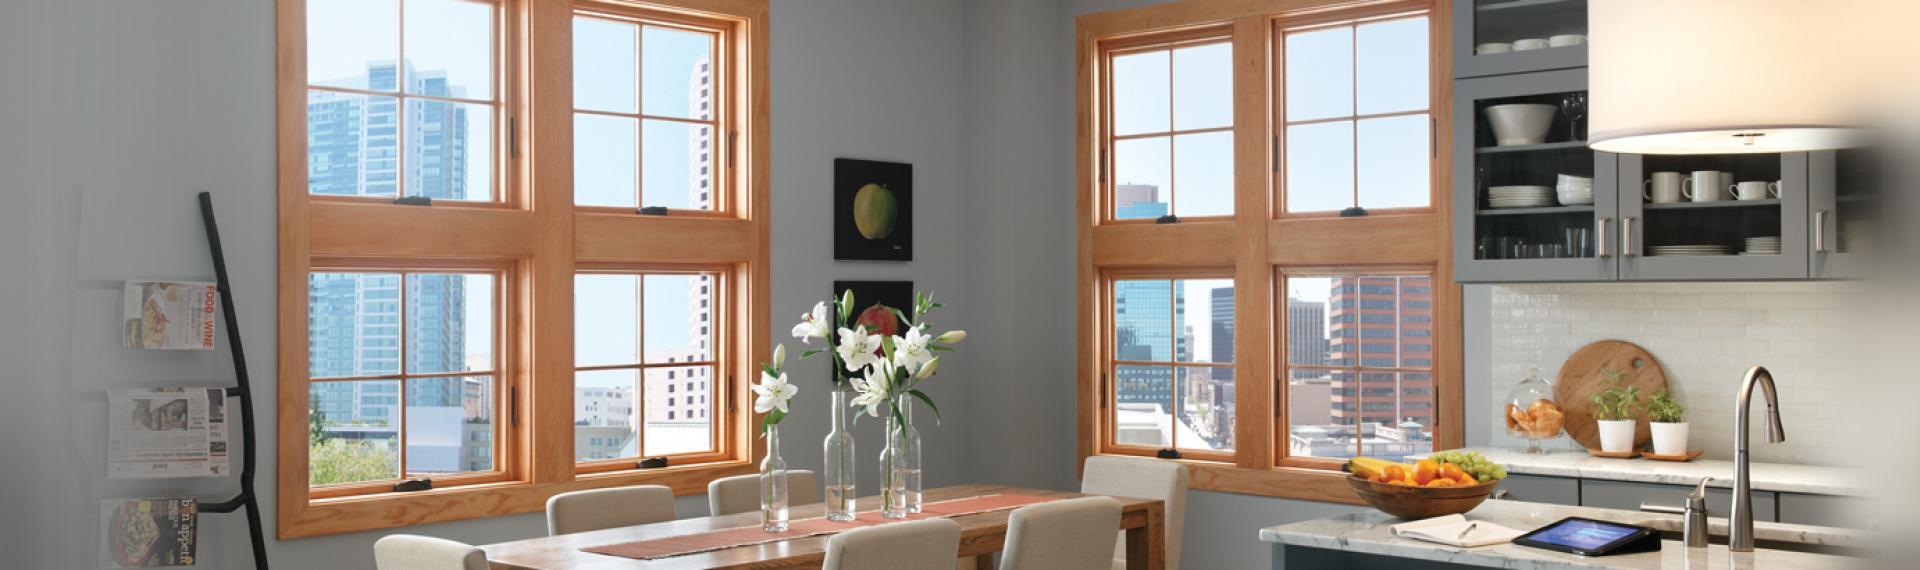 Kitchen Windows - Design & Ideas